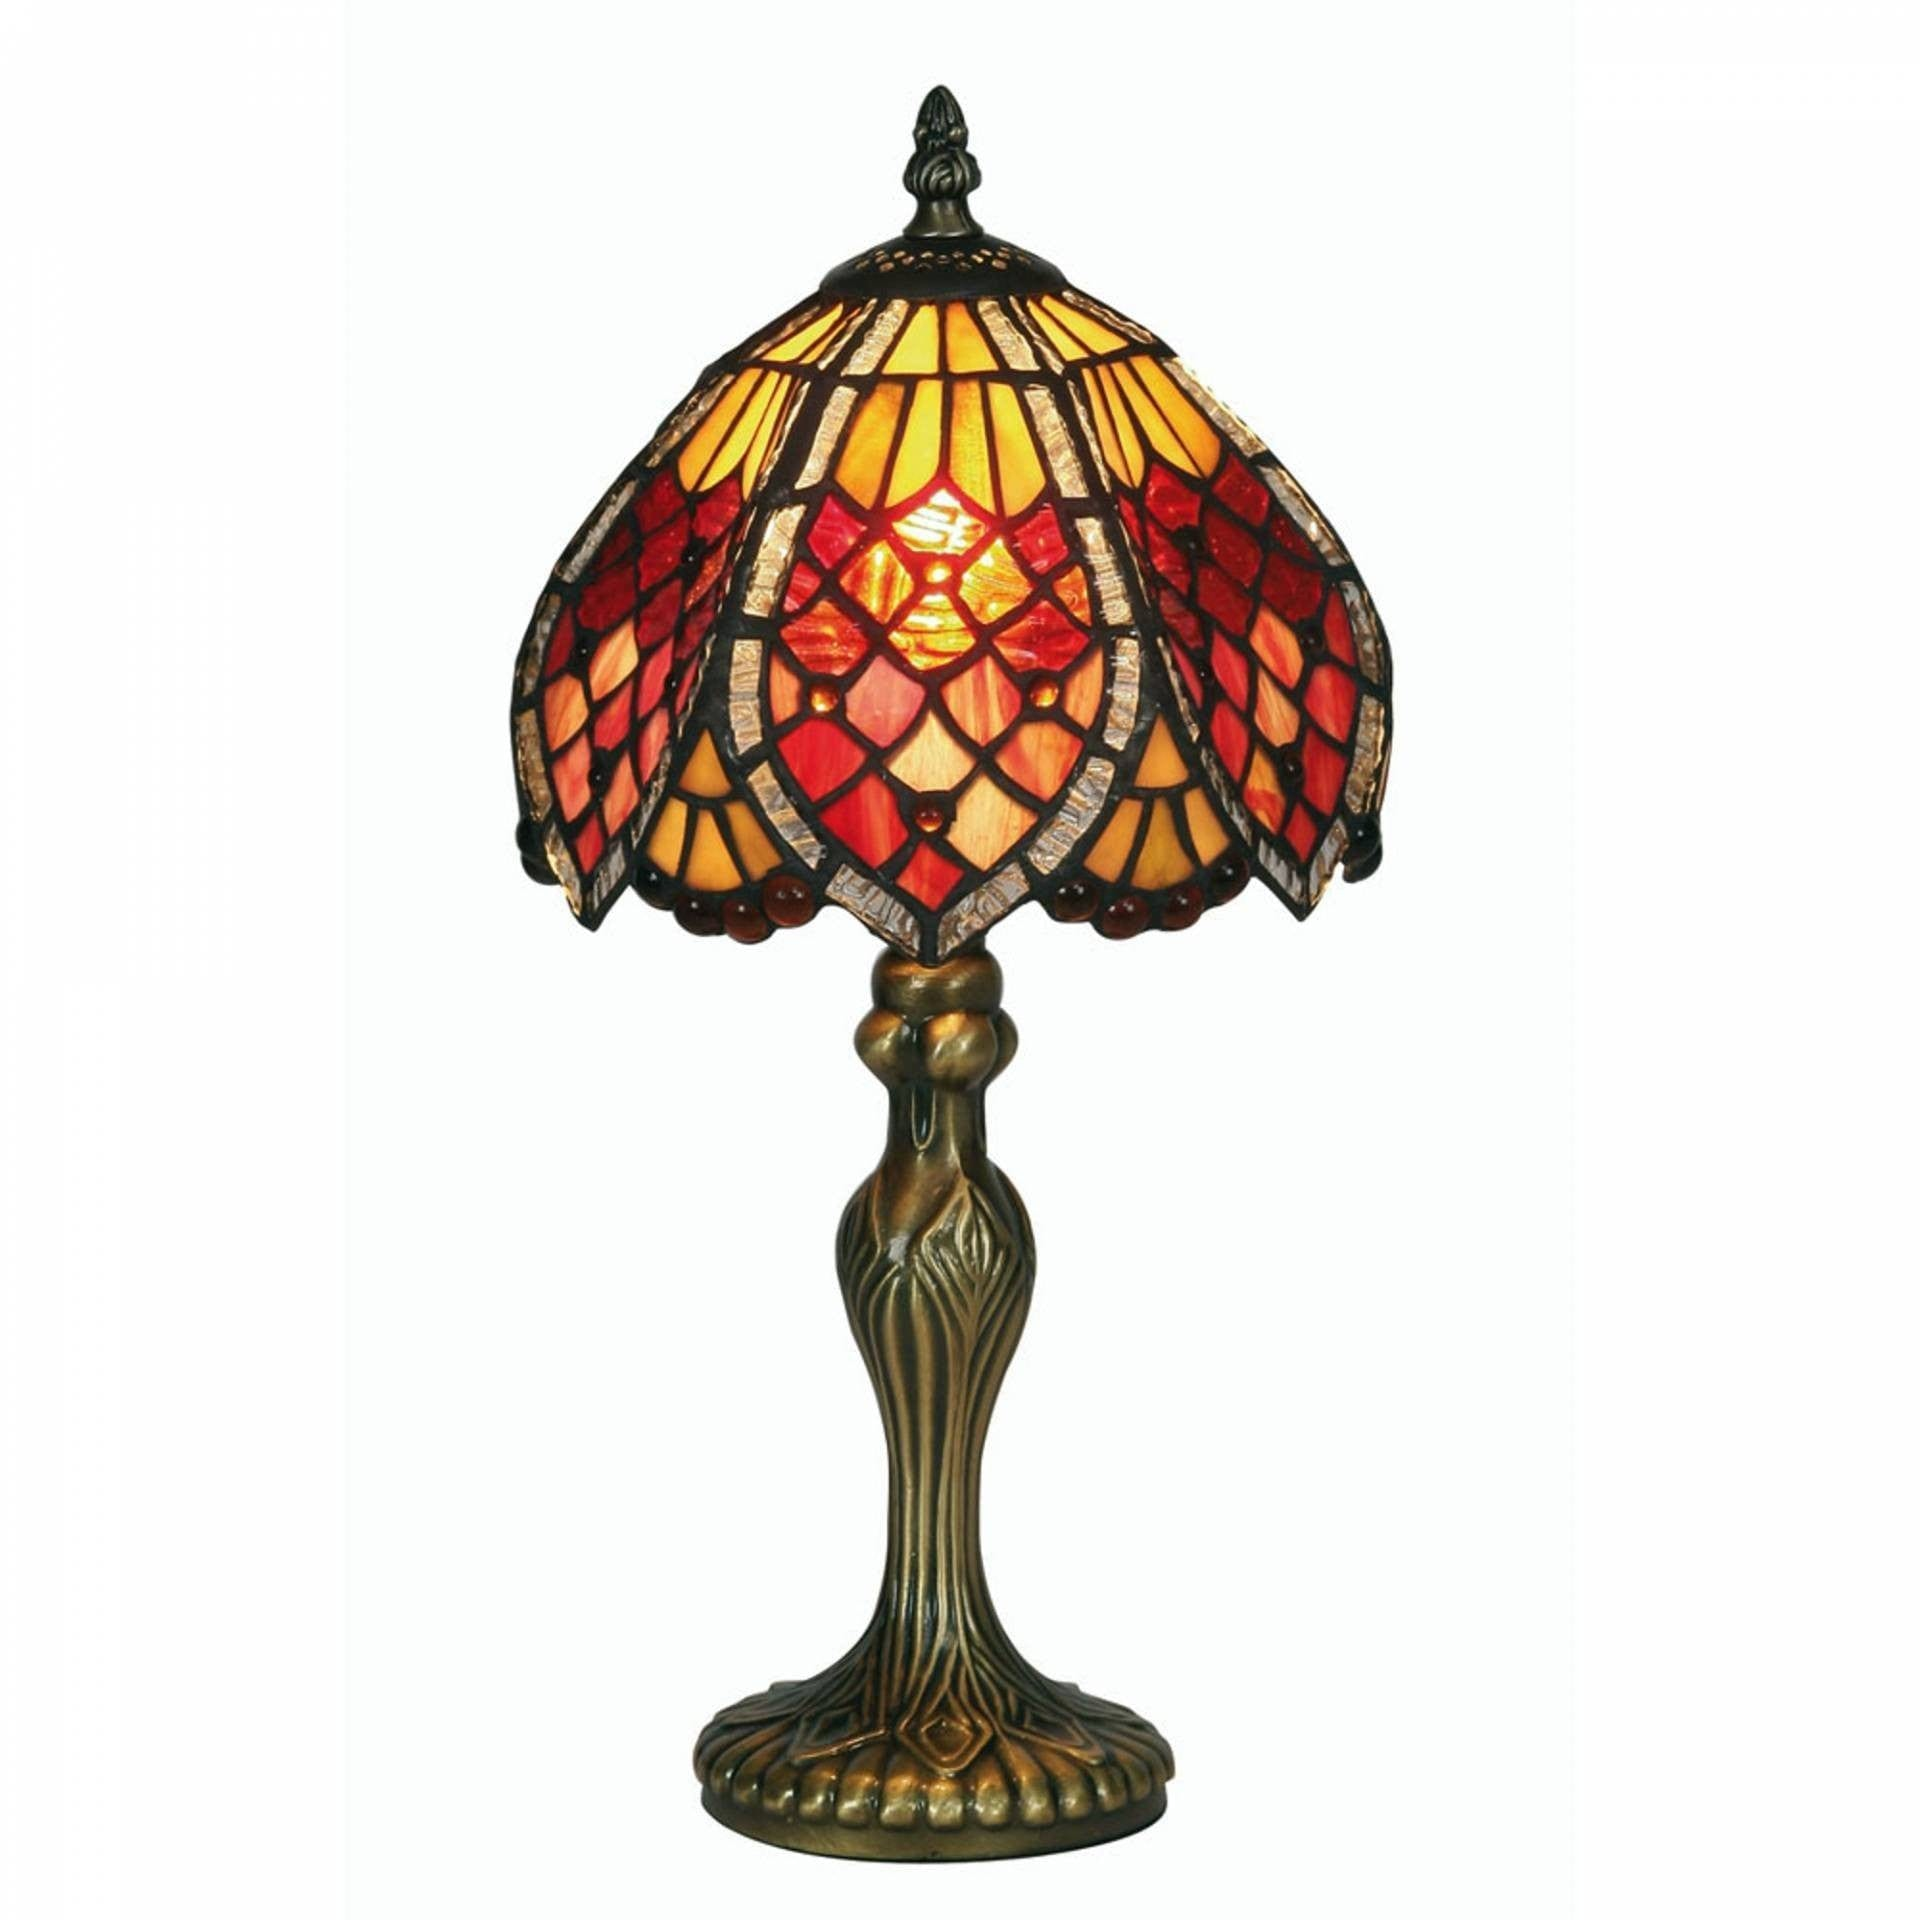 Tiffany Bedside Lamps - Oaks Tiffany Orsino Tiffany Lamp OT 1318/8TL